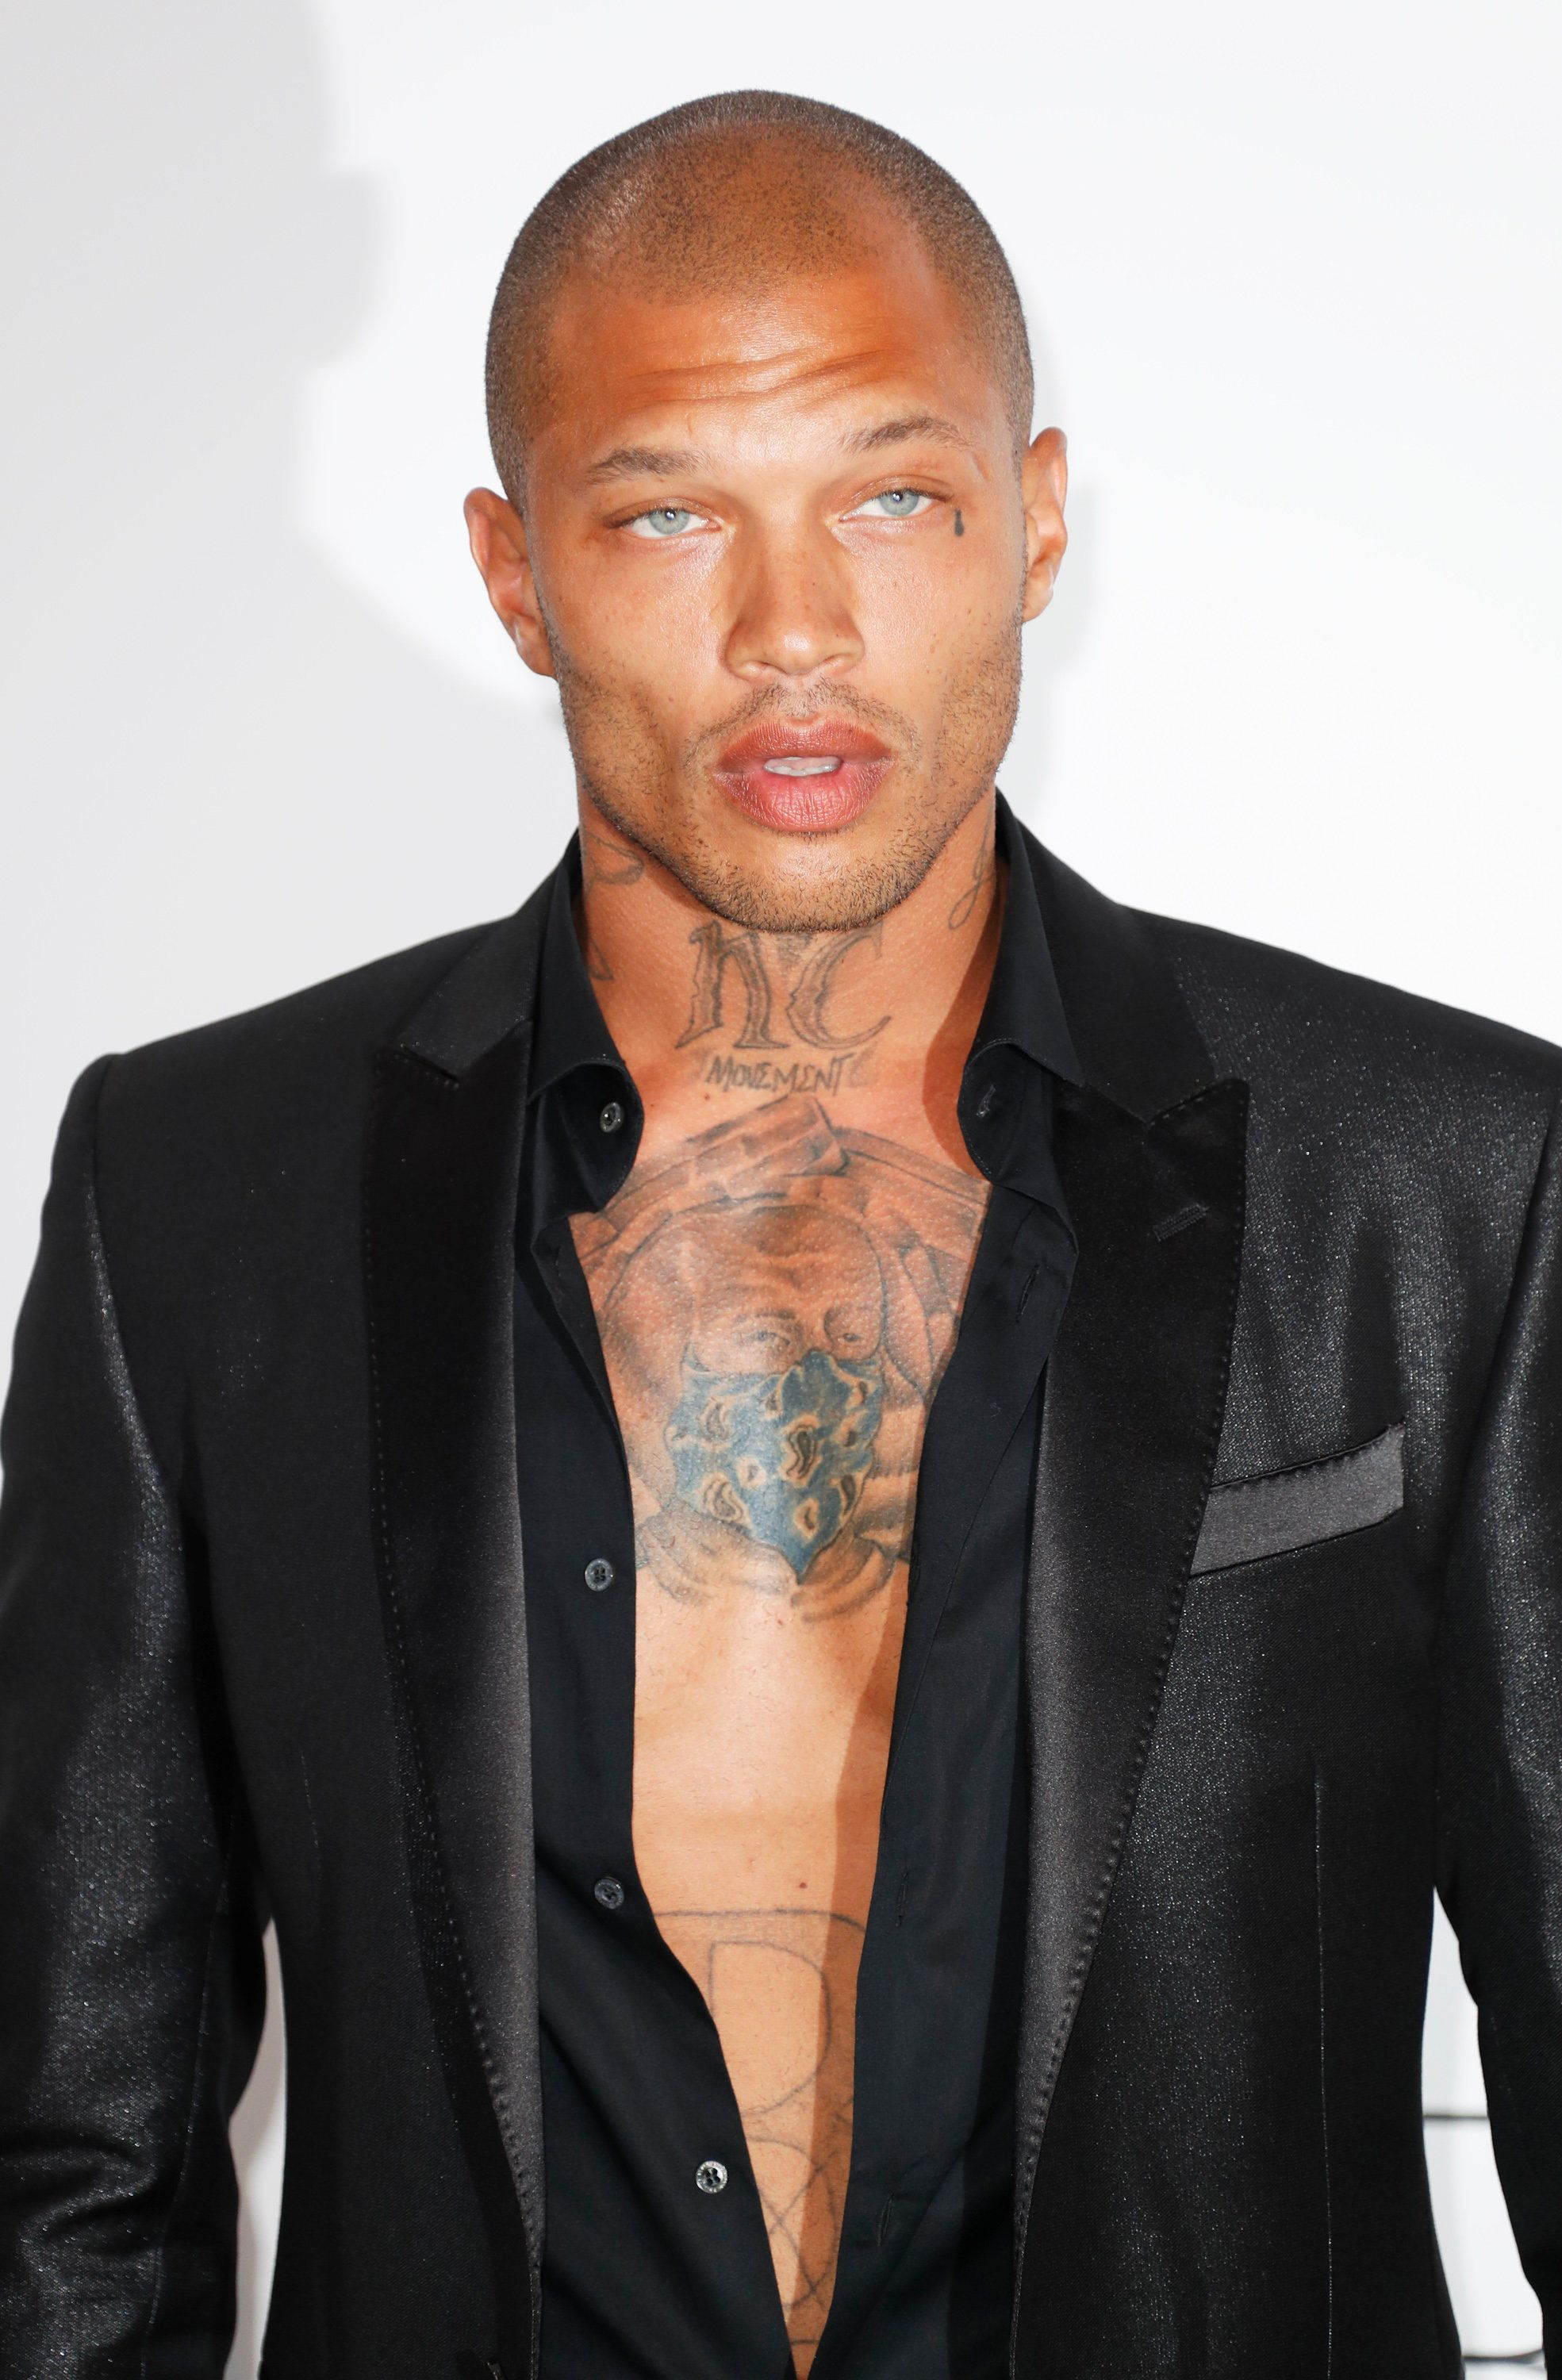 CAP D'ANTIBES, FRANCE - MAY 25:  Jeremy Meeks arrives at the amfAR Gala Cannes 2017 at Hotel du Cap-Eden-Roc on May 25, 2017 in Cap d'Antibes, France.  (Photo by David M Benett/Dave Benett/Getty Images)